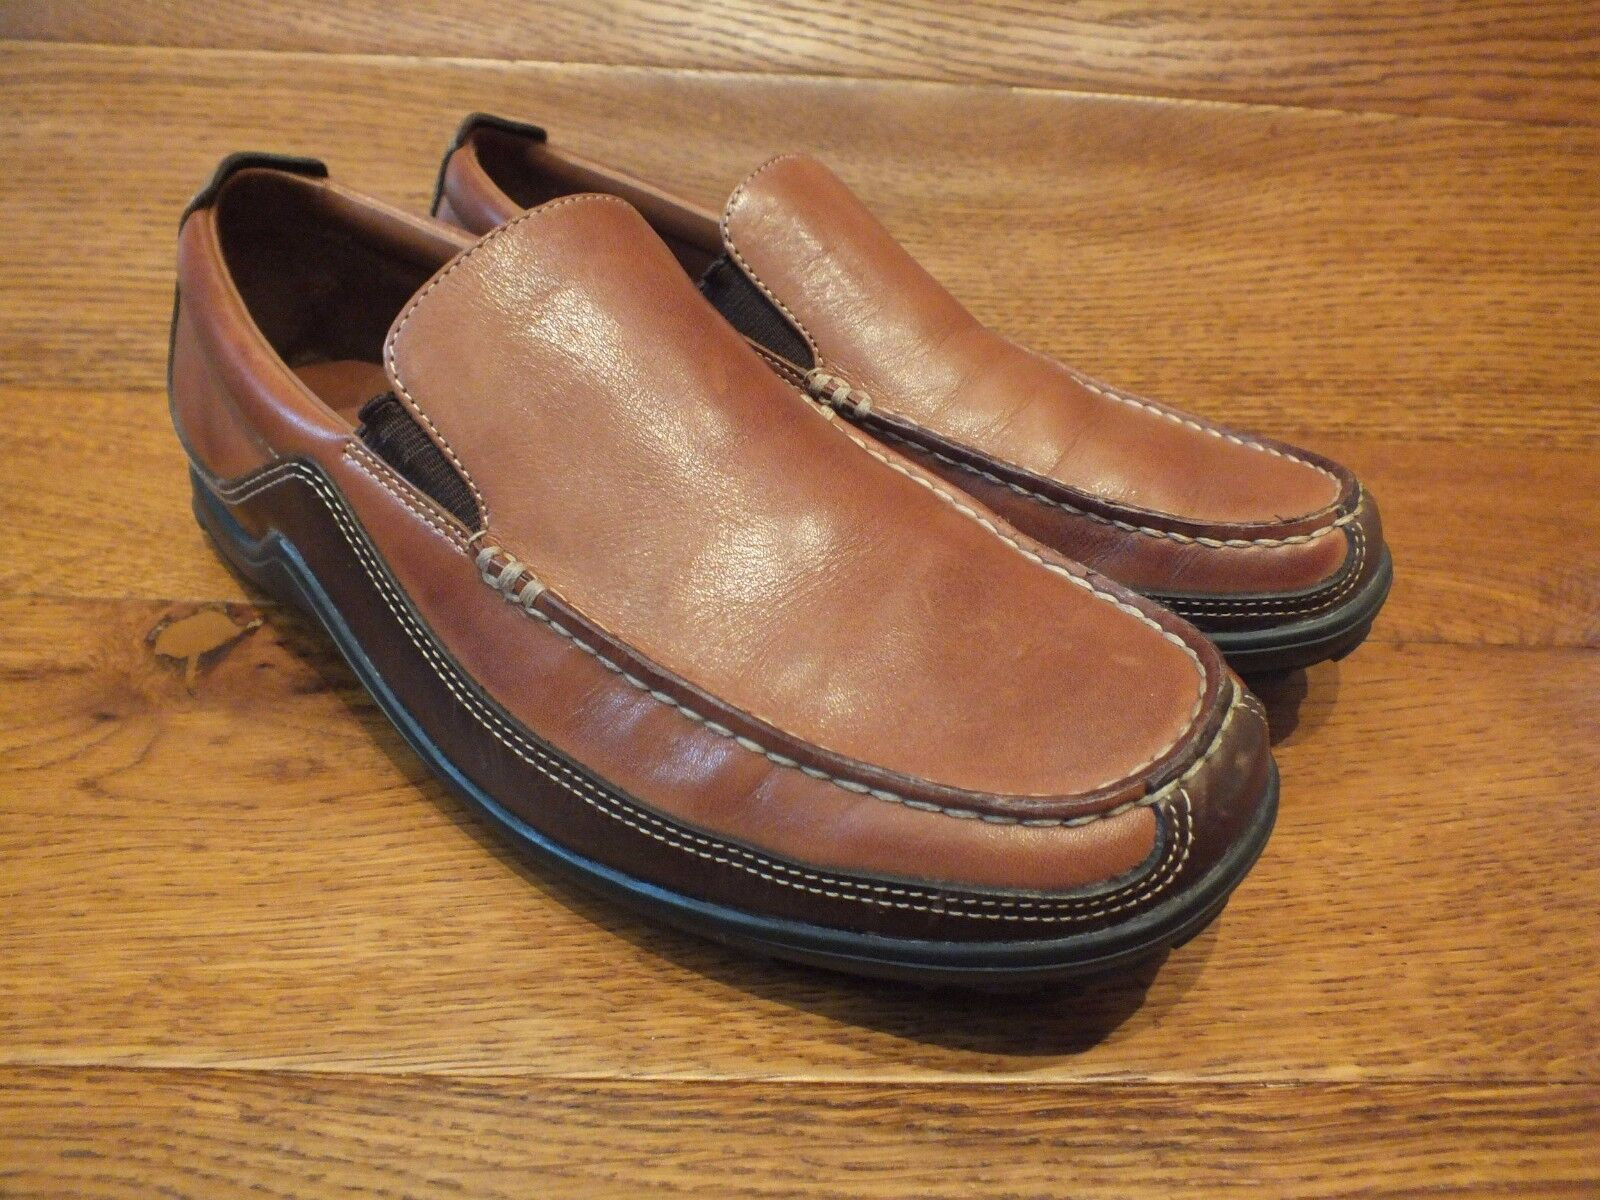 Cole Haan Slip Tucker VENEZIANA Tan/Marrone Pelle Slip Haan On Mocassini EU 41 f6a24f